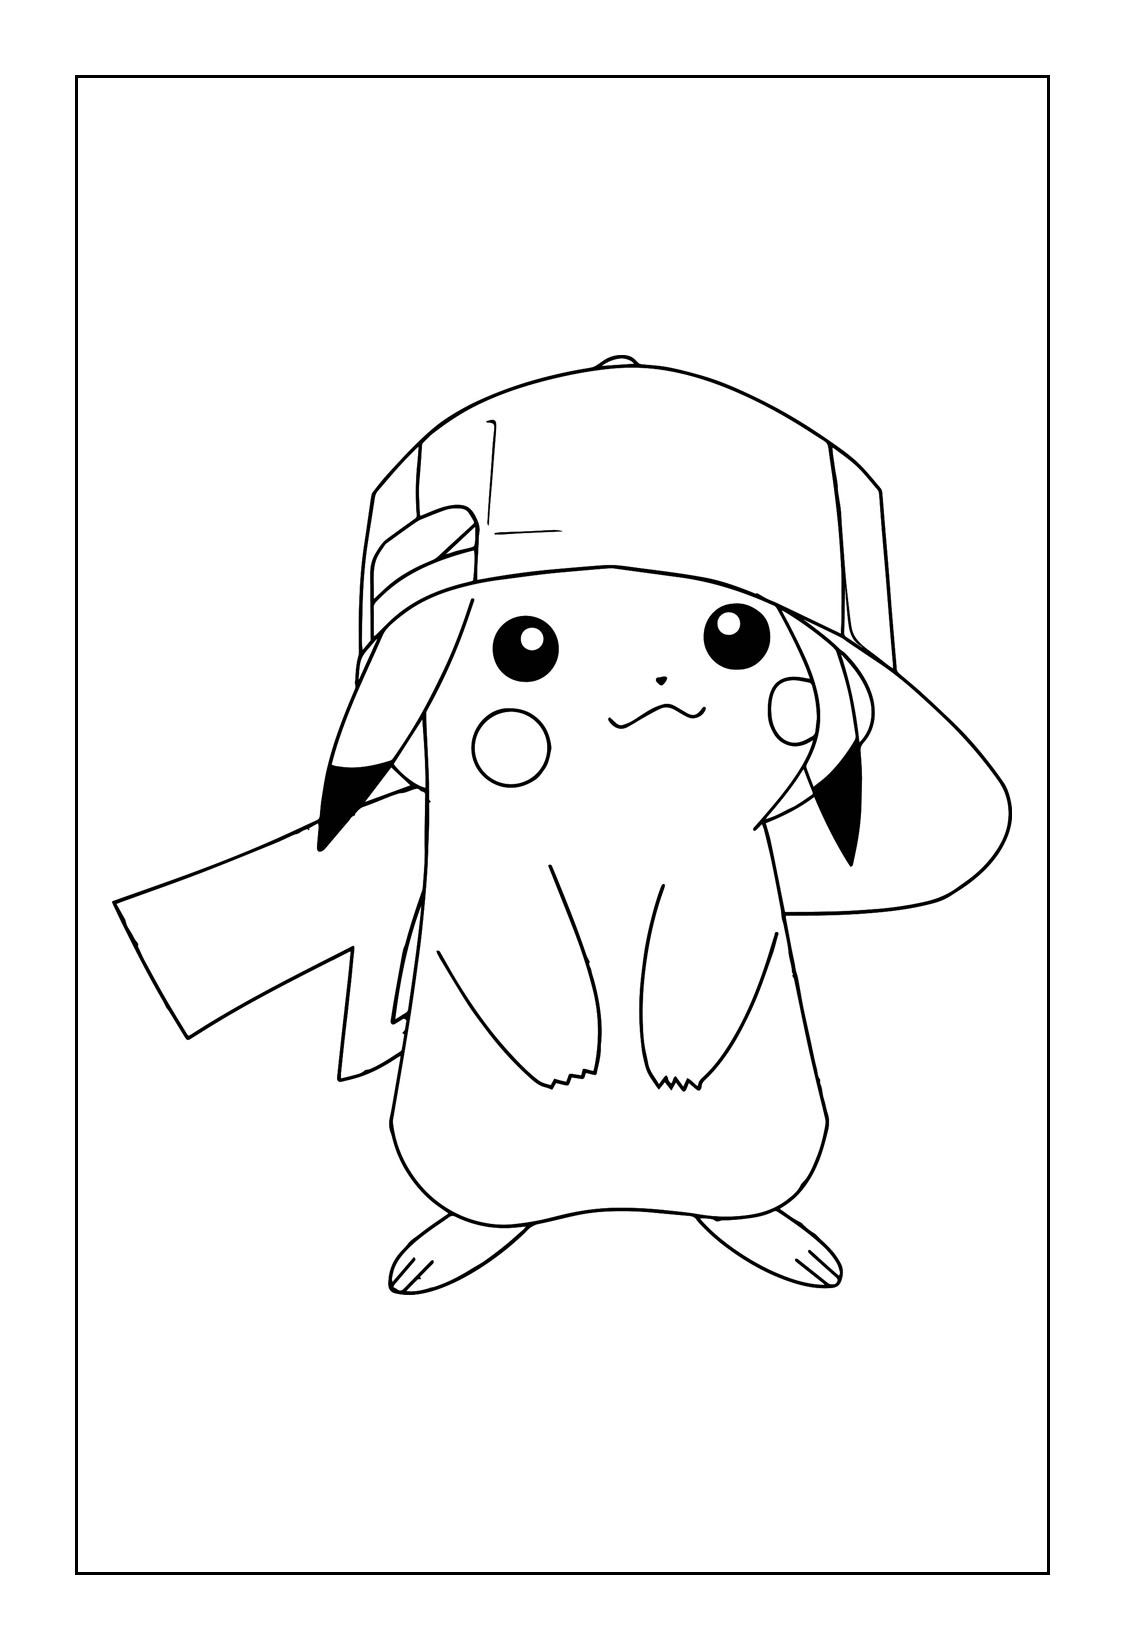 Printable Pikachu Coloring Pages With Images Pikachu Coloring